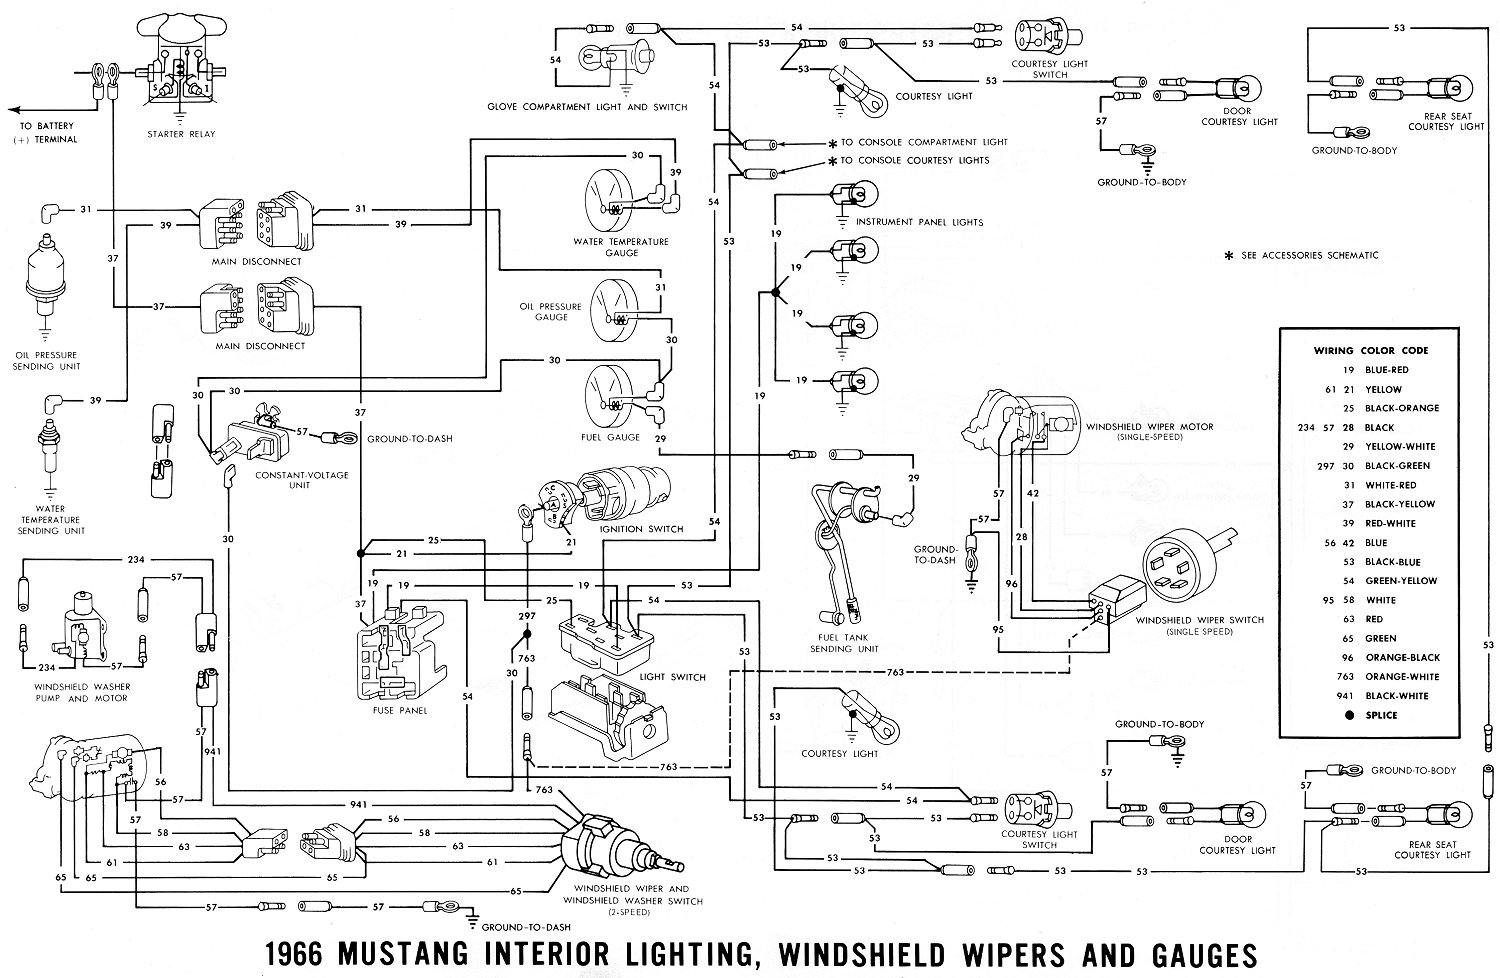 66inter1 66 mustang wiring diagram radio tape 66 mustang fuse diagram 1967 ford mustang fuse box location at edmiracle.co